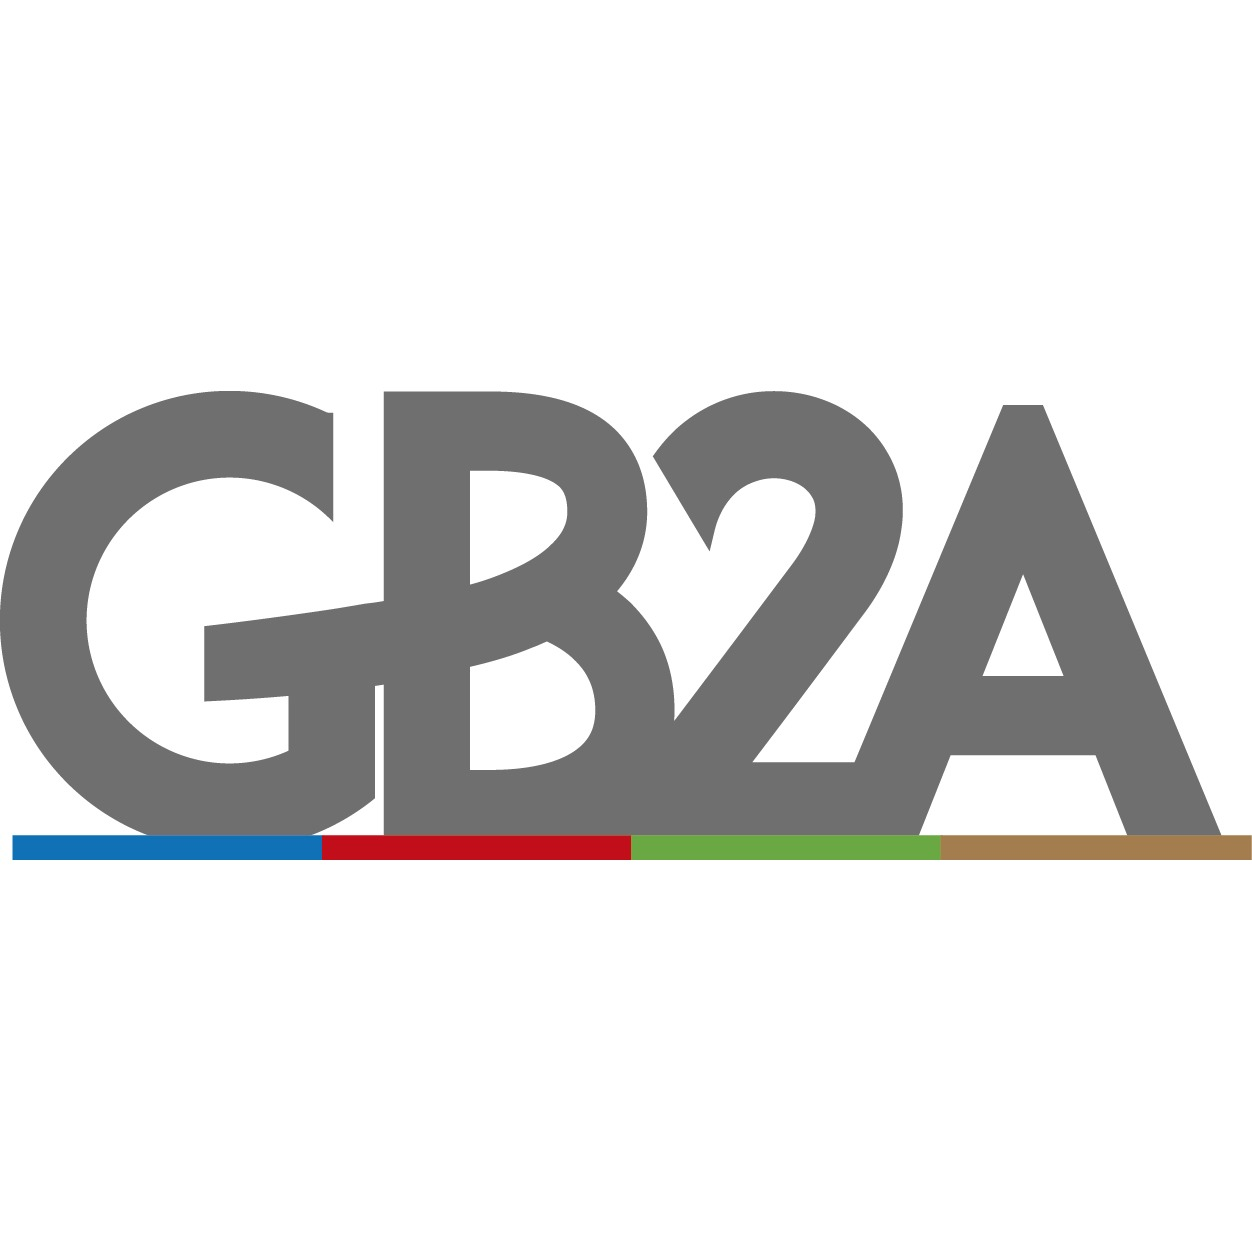 the GB2A Avocats logo.